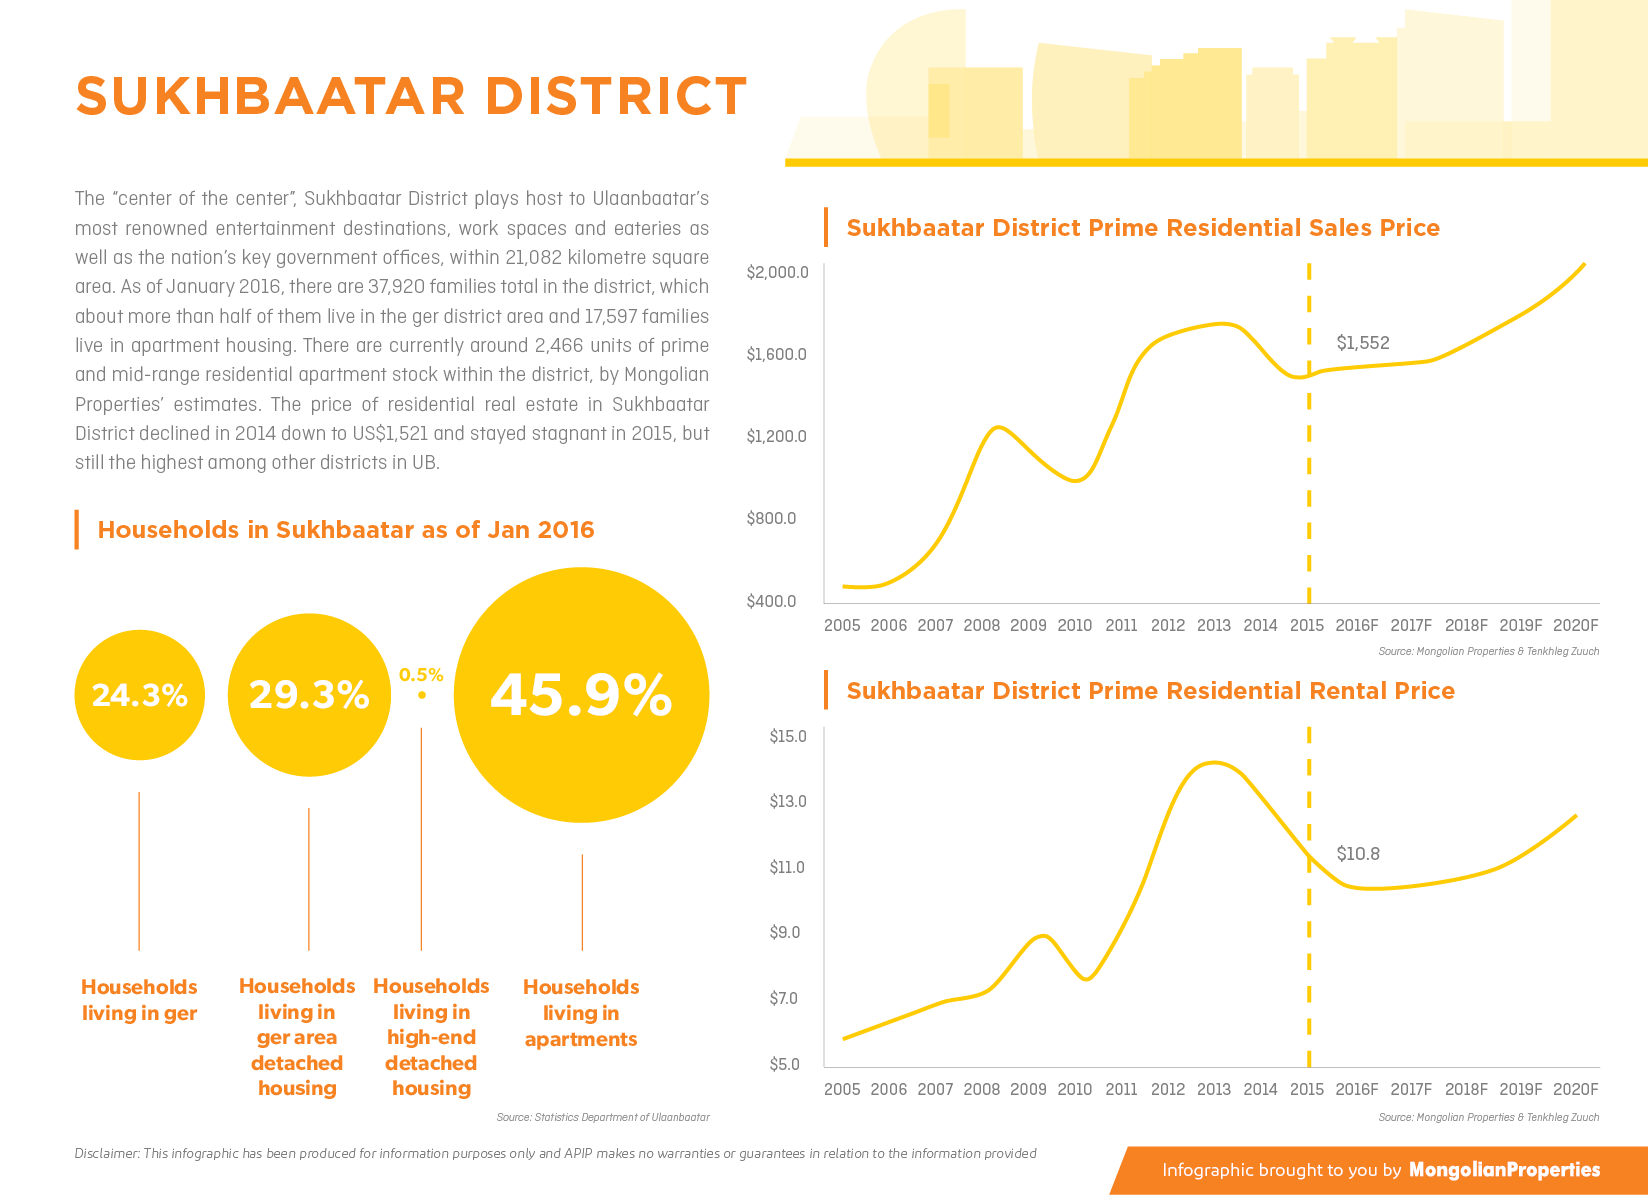 #22 Infographic - Sukhbaatar District